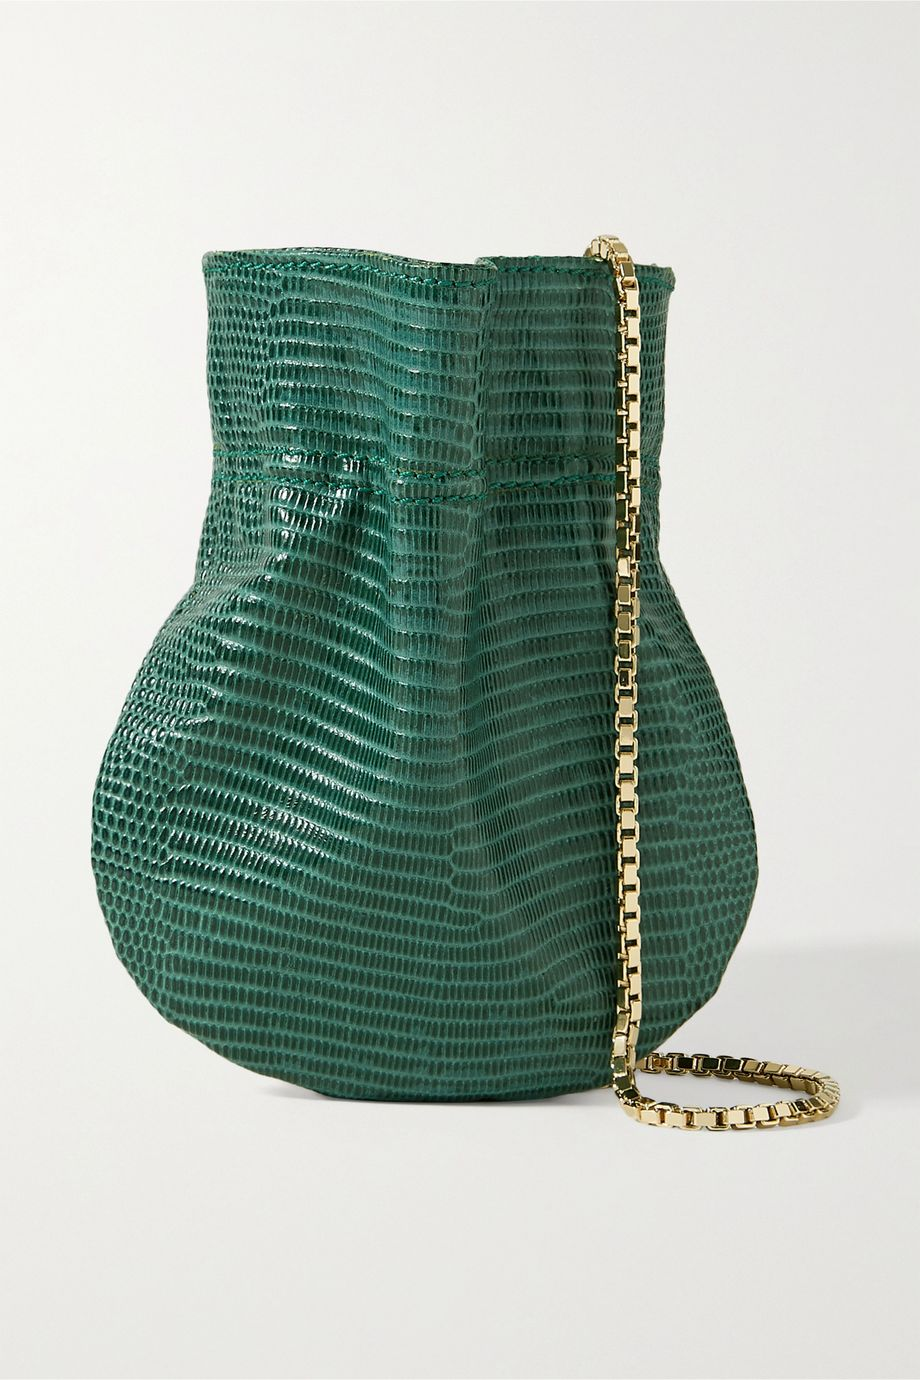 TL-180 Le Mini Fazzoletto lizard-effect leather shoulder bag